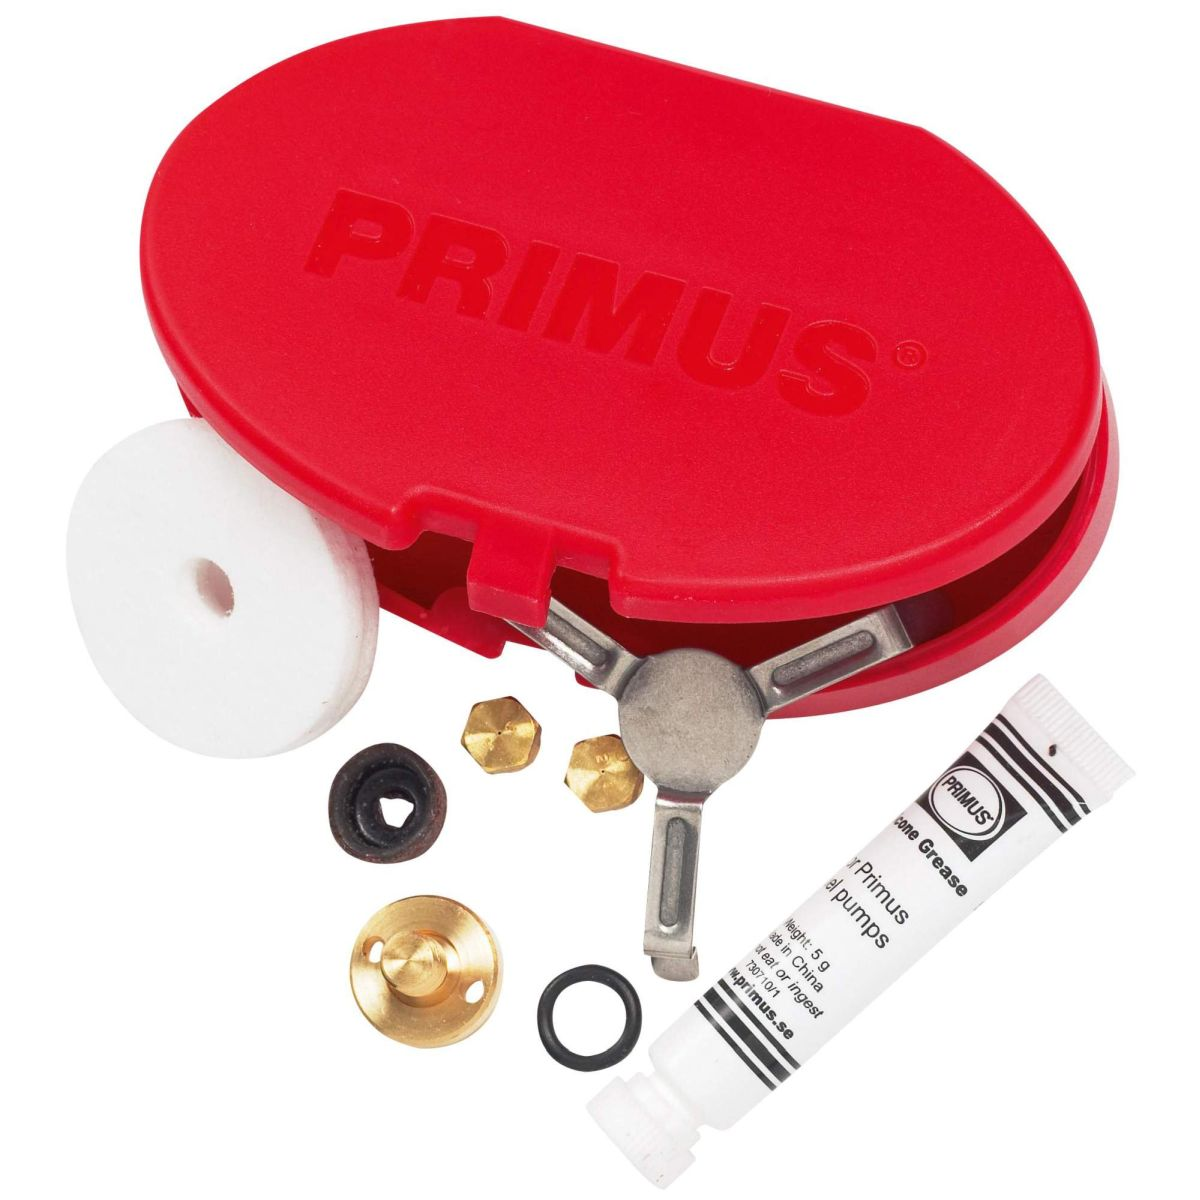 Service Kit for Primus Omnifuel Stove